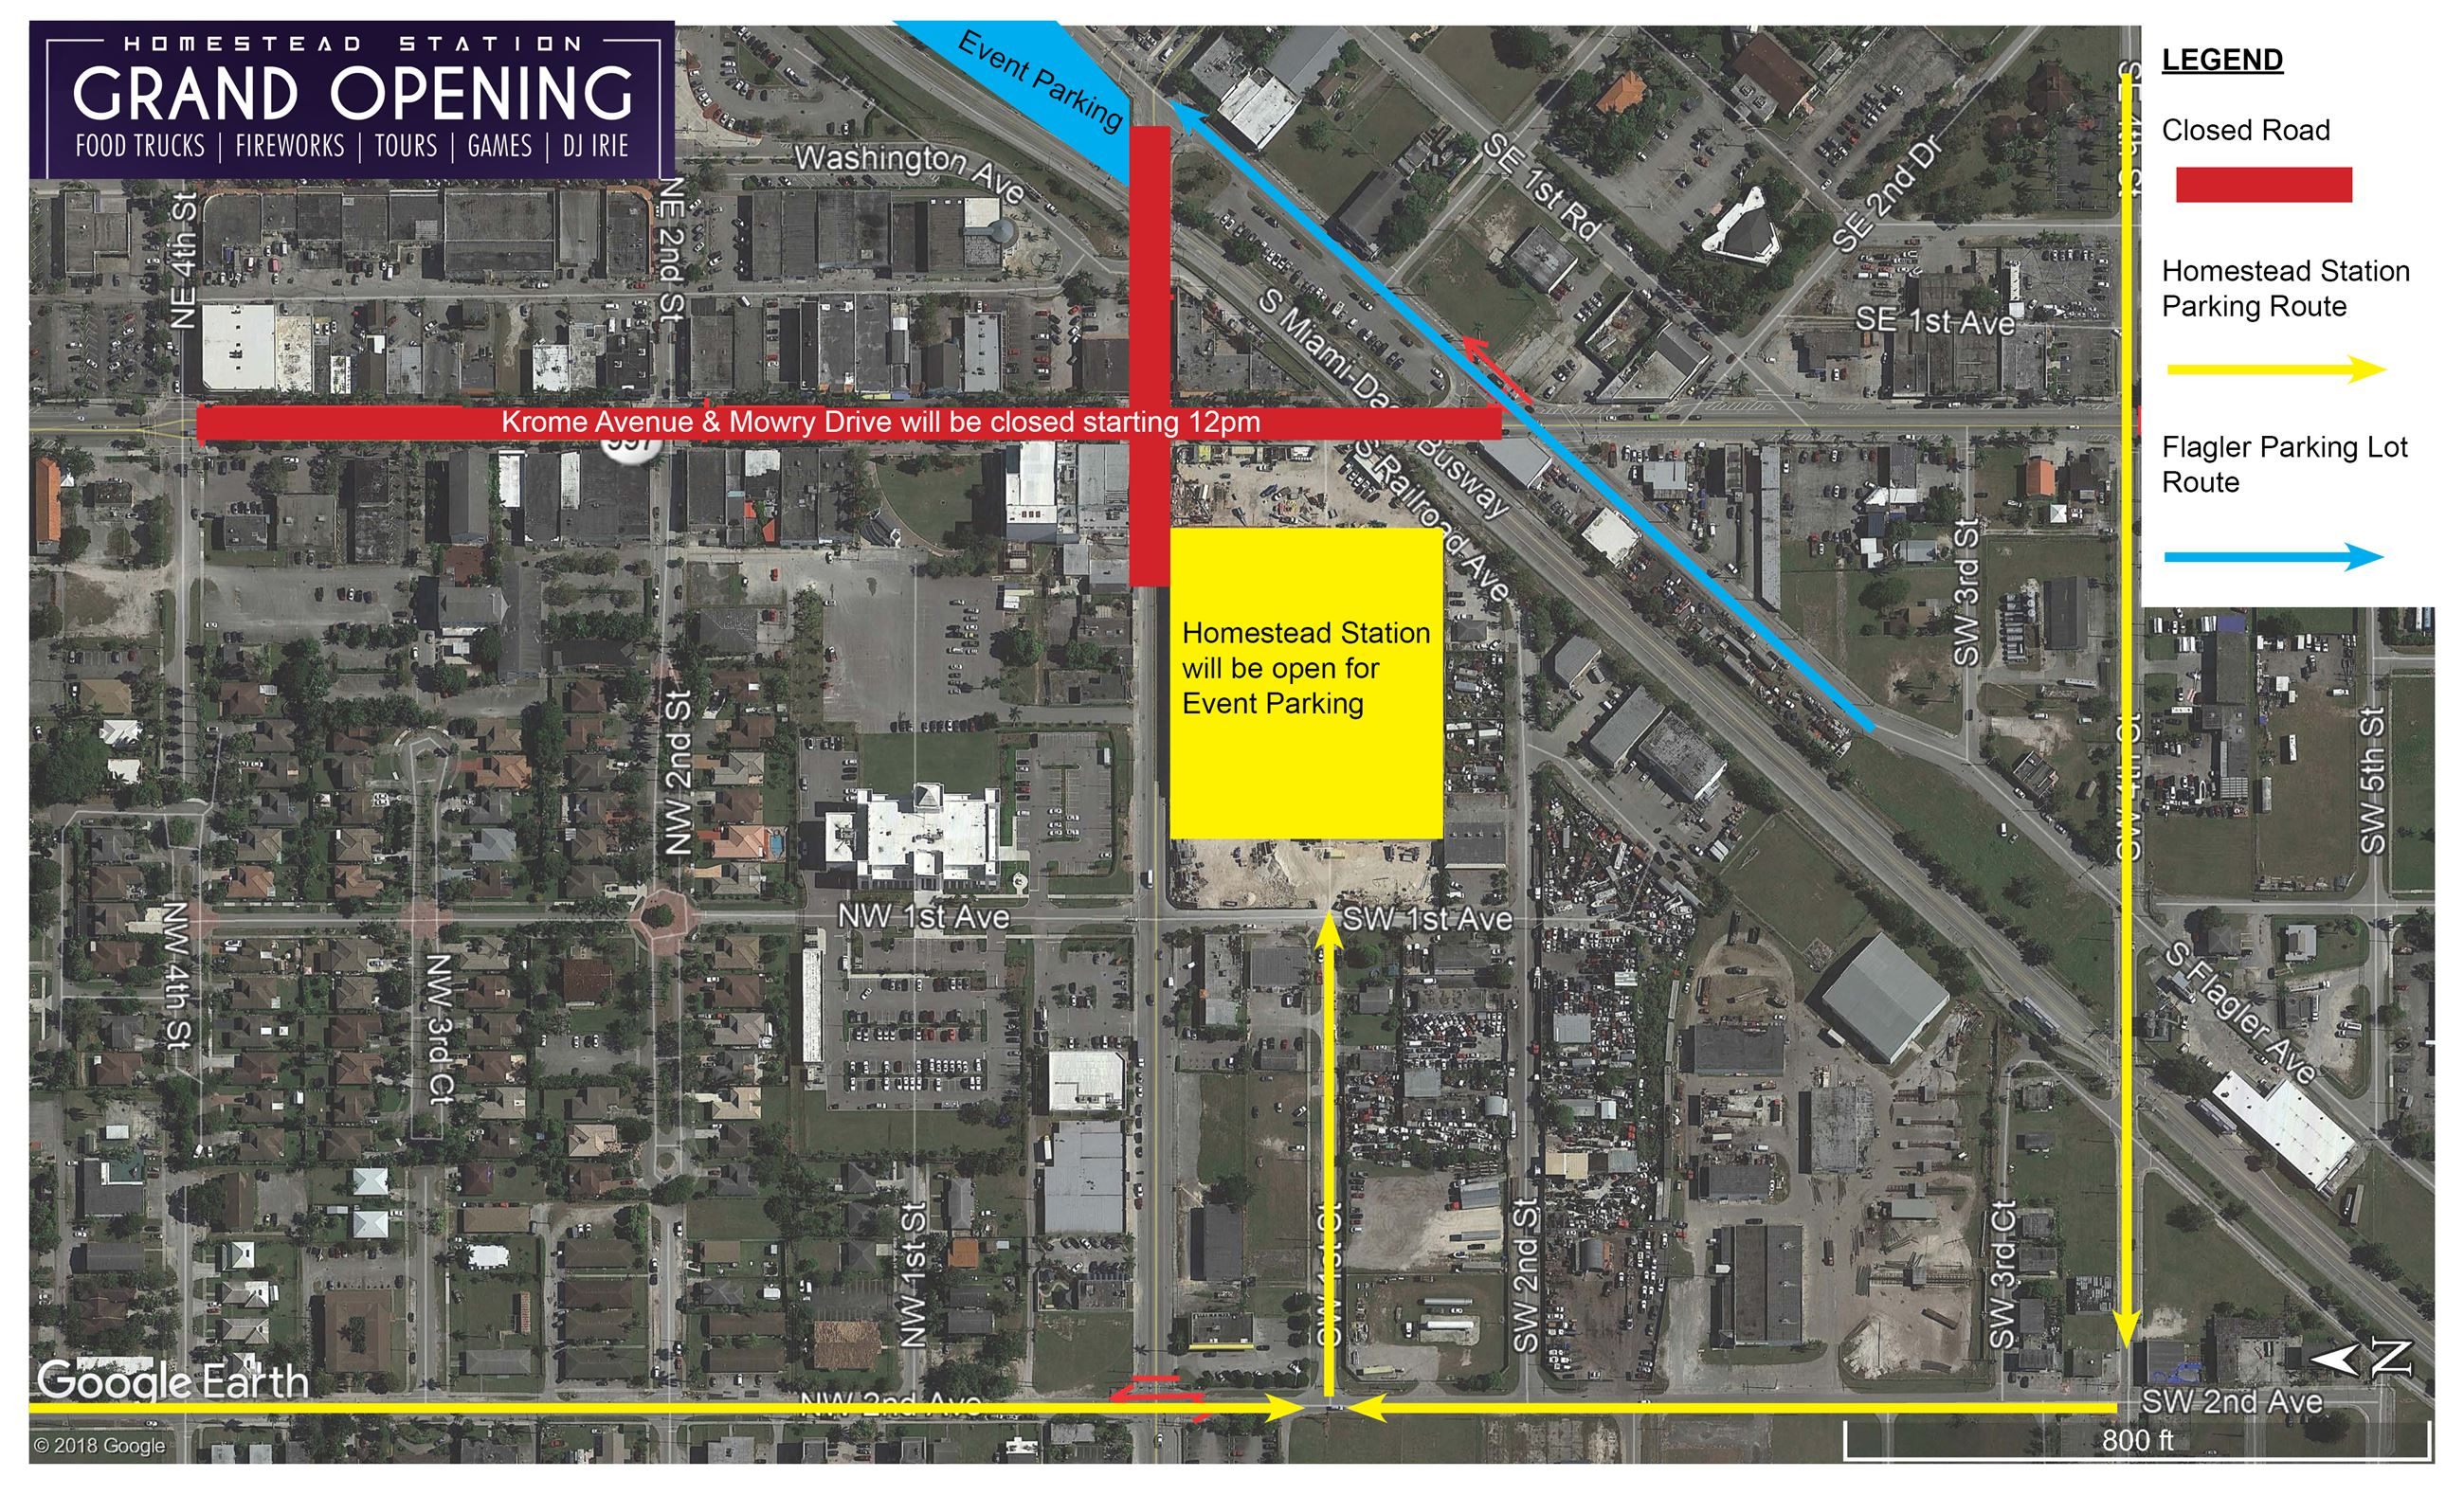 Homestead Station Grand Opening Traffic Plan